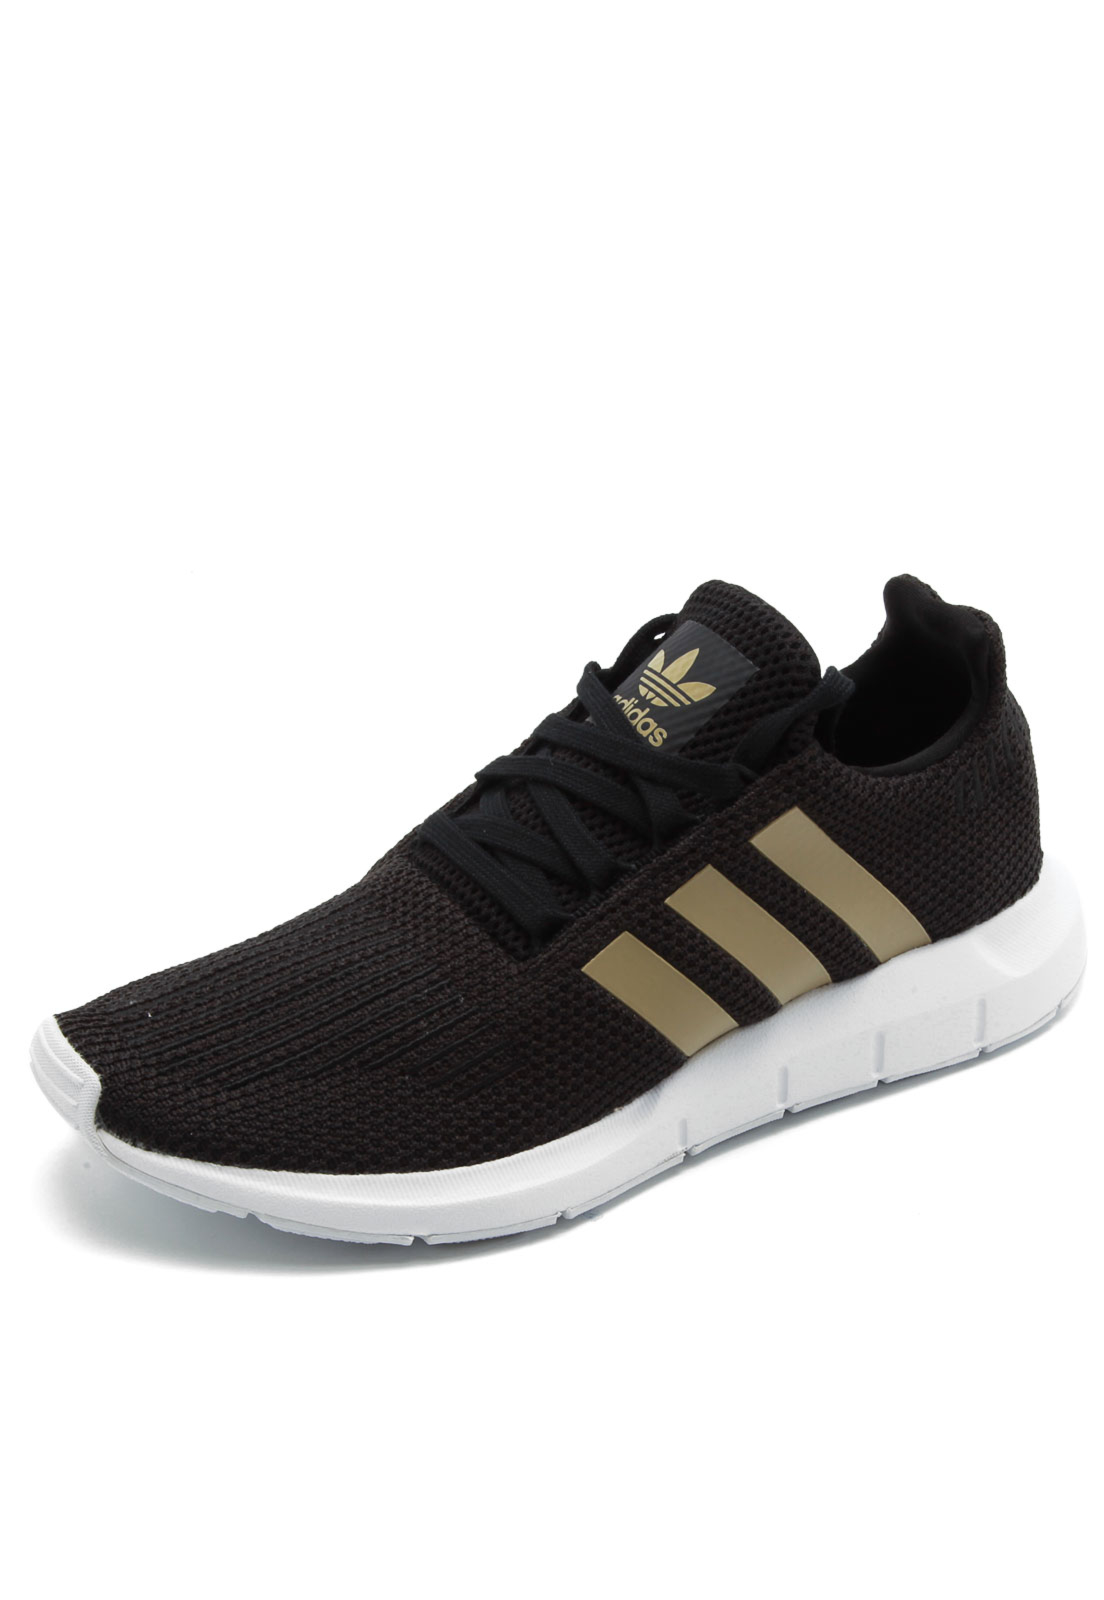 Tênis adidas Originals Swift Run W Preto | Adidas originals